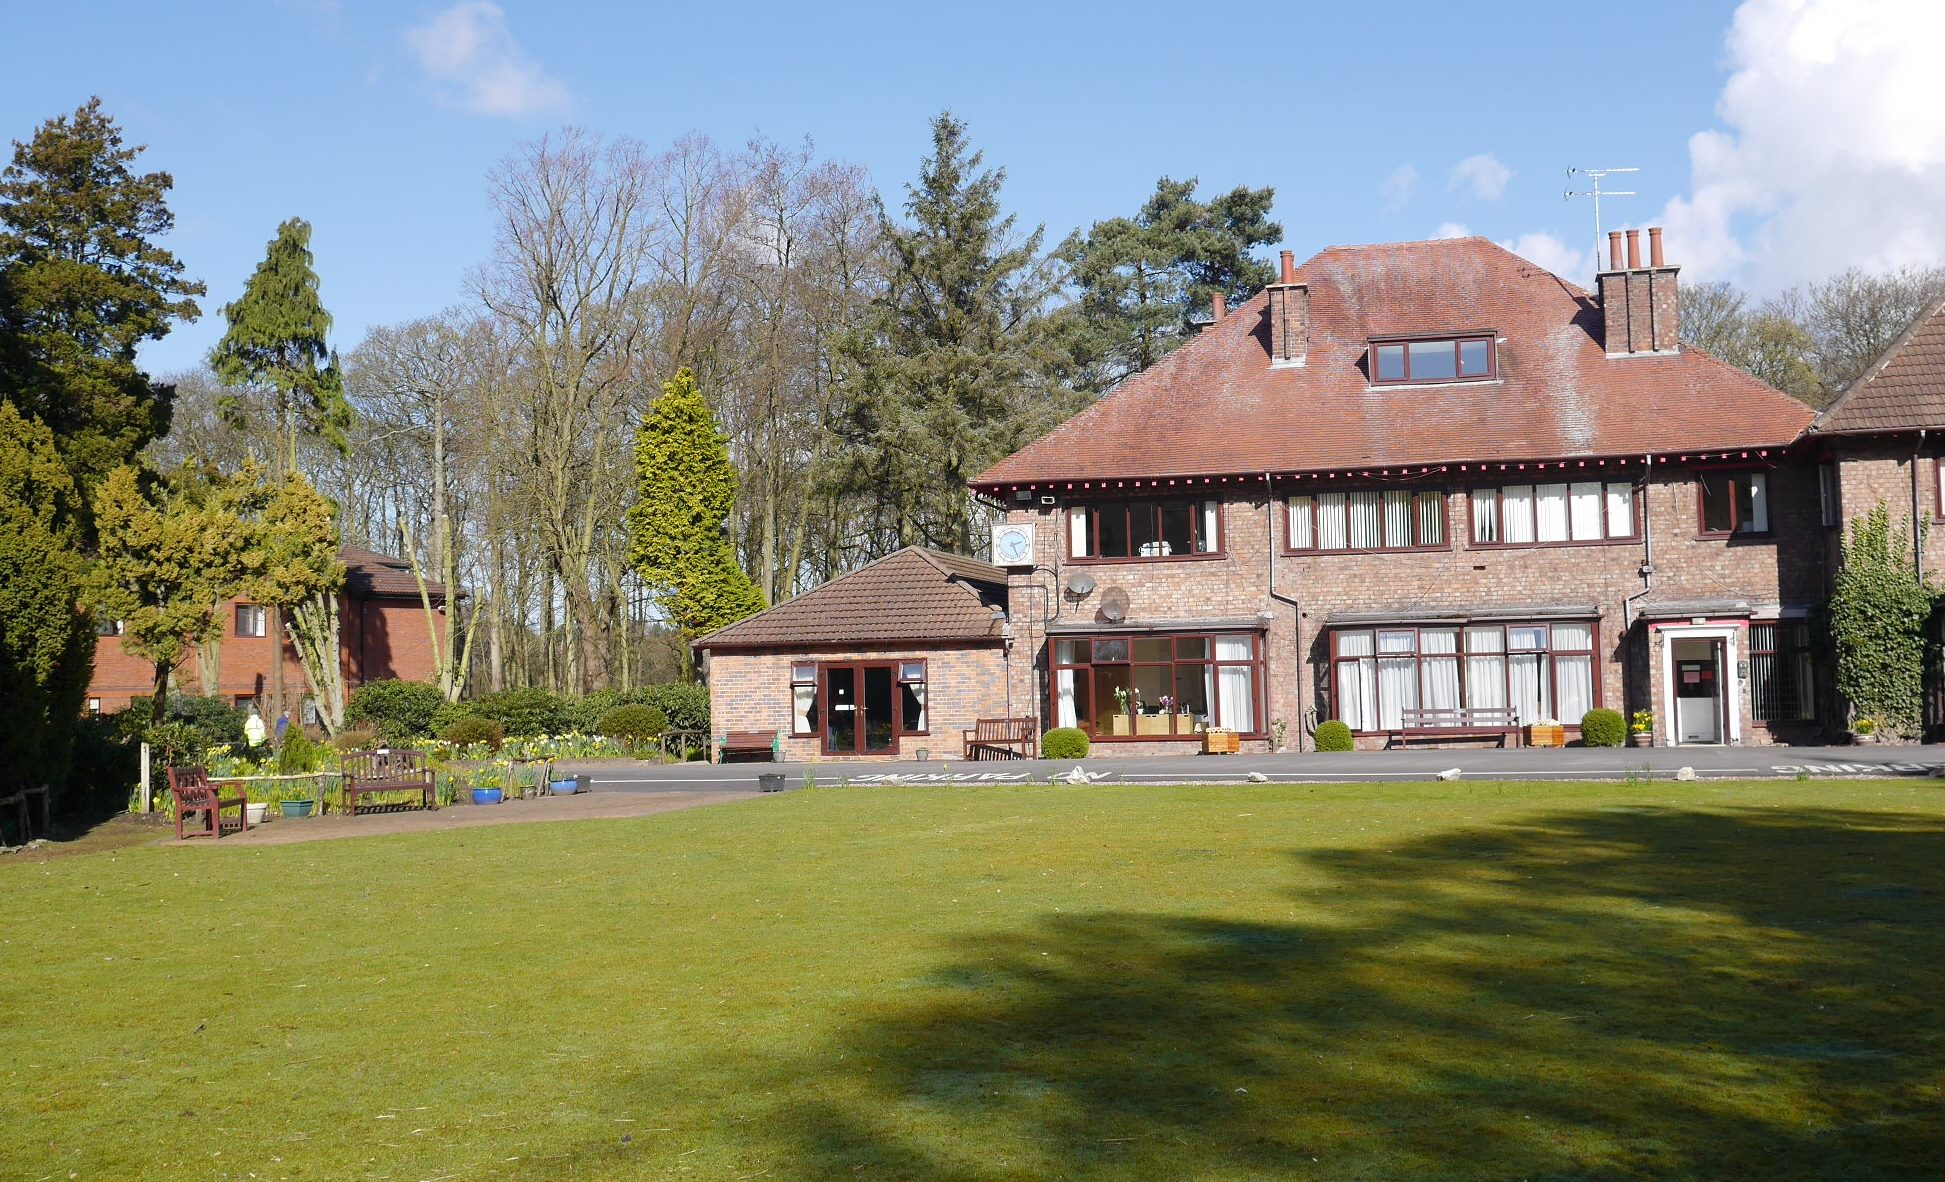 Hospice allowed to accept patients again after inspectors report big improvements